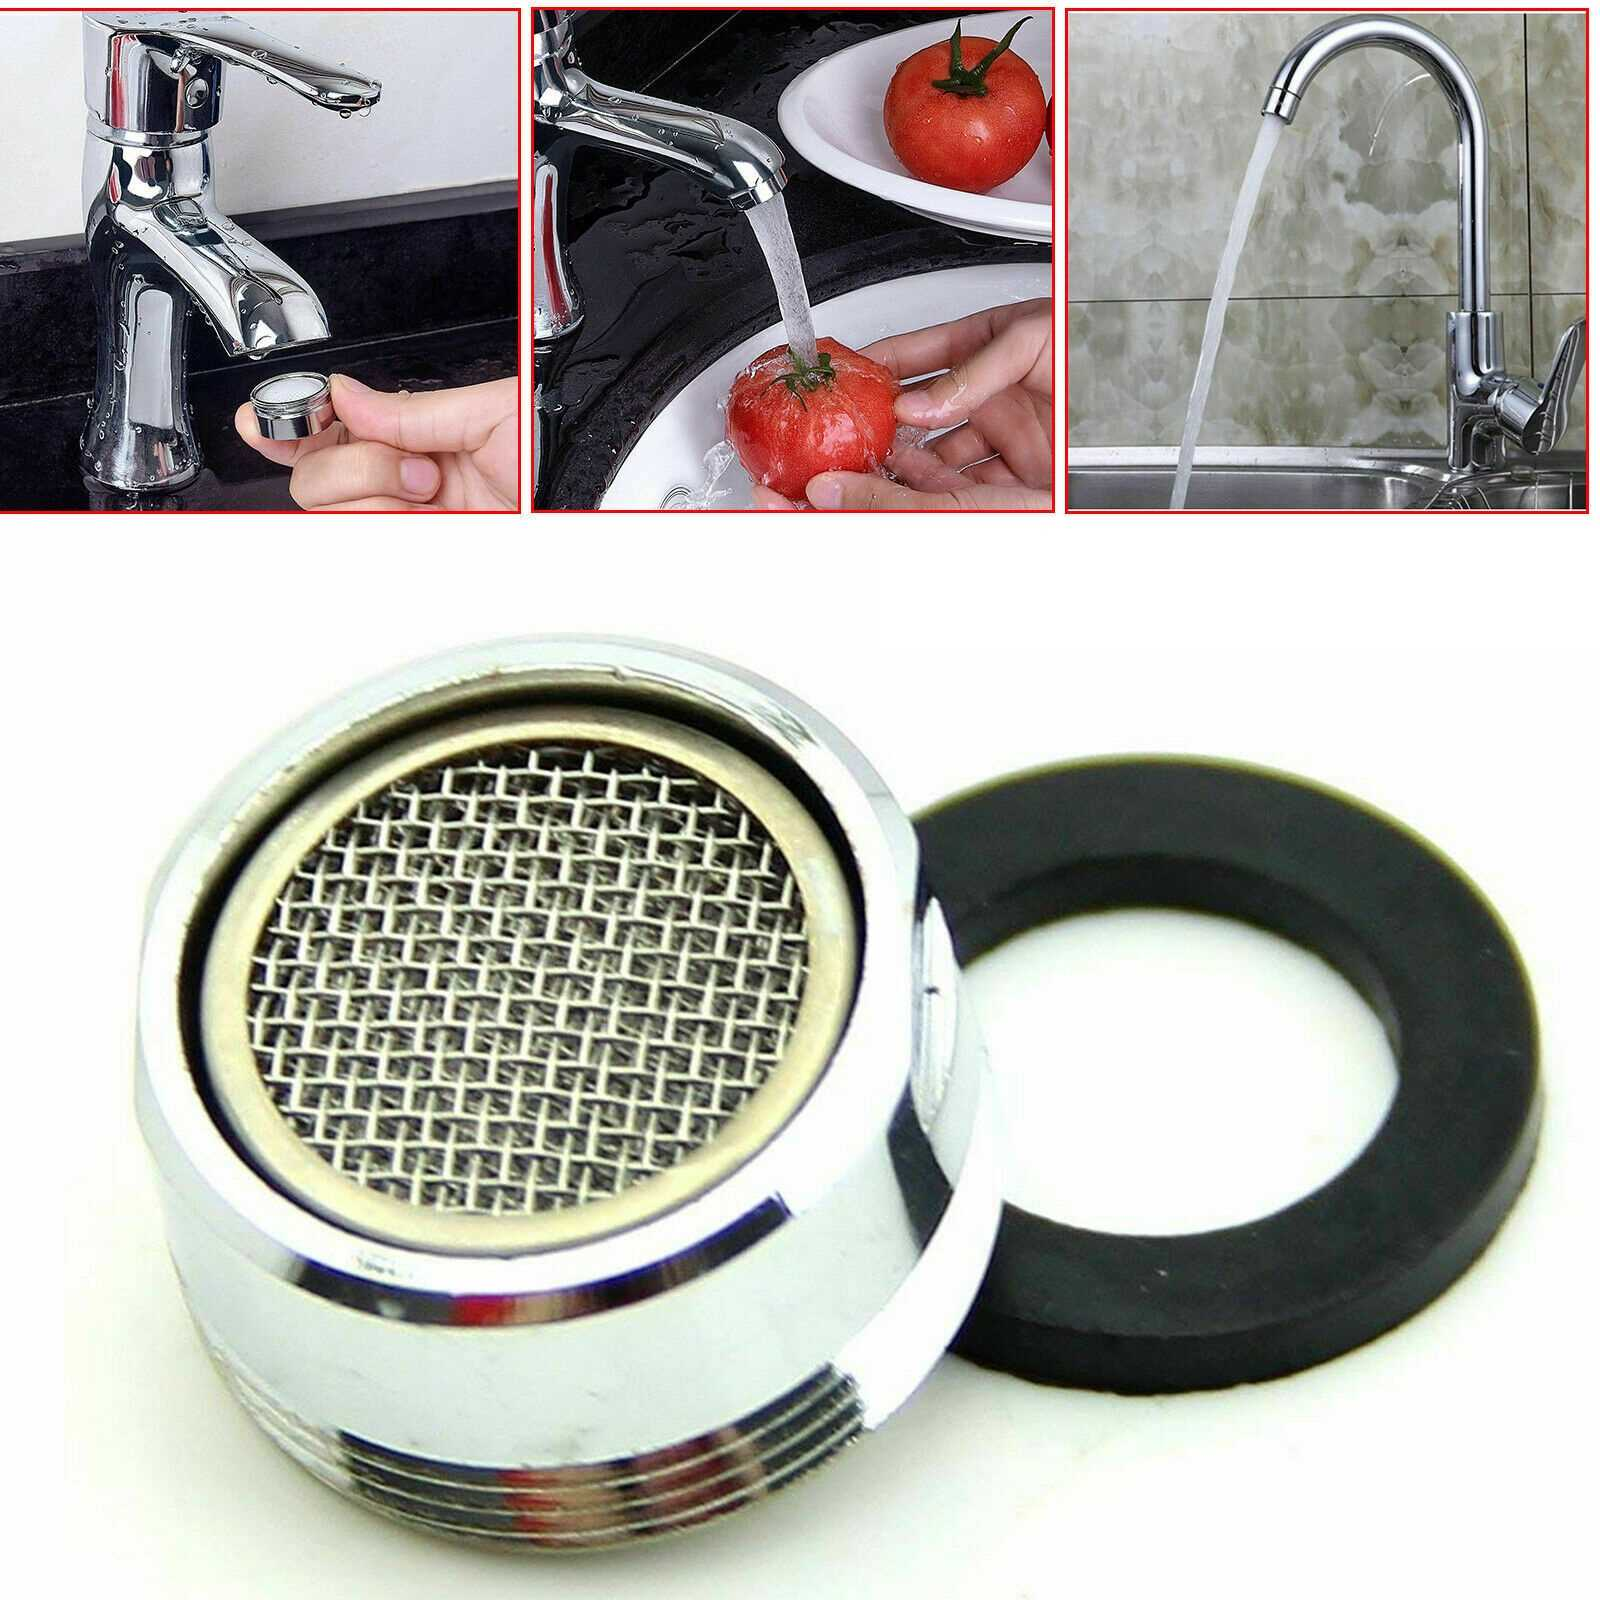 24Mm Male Tap Aerator Water Saving Faucet Nozzle Spout End Diffuser Filter